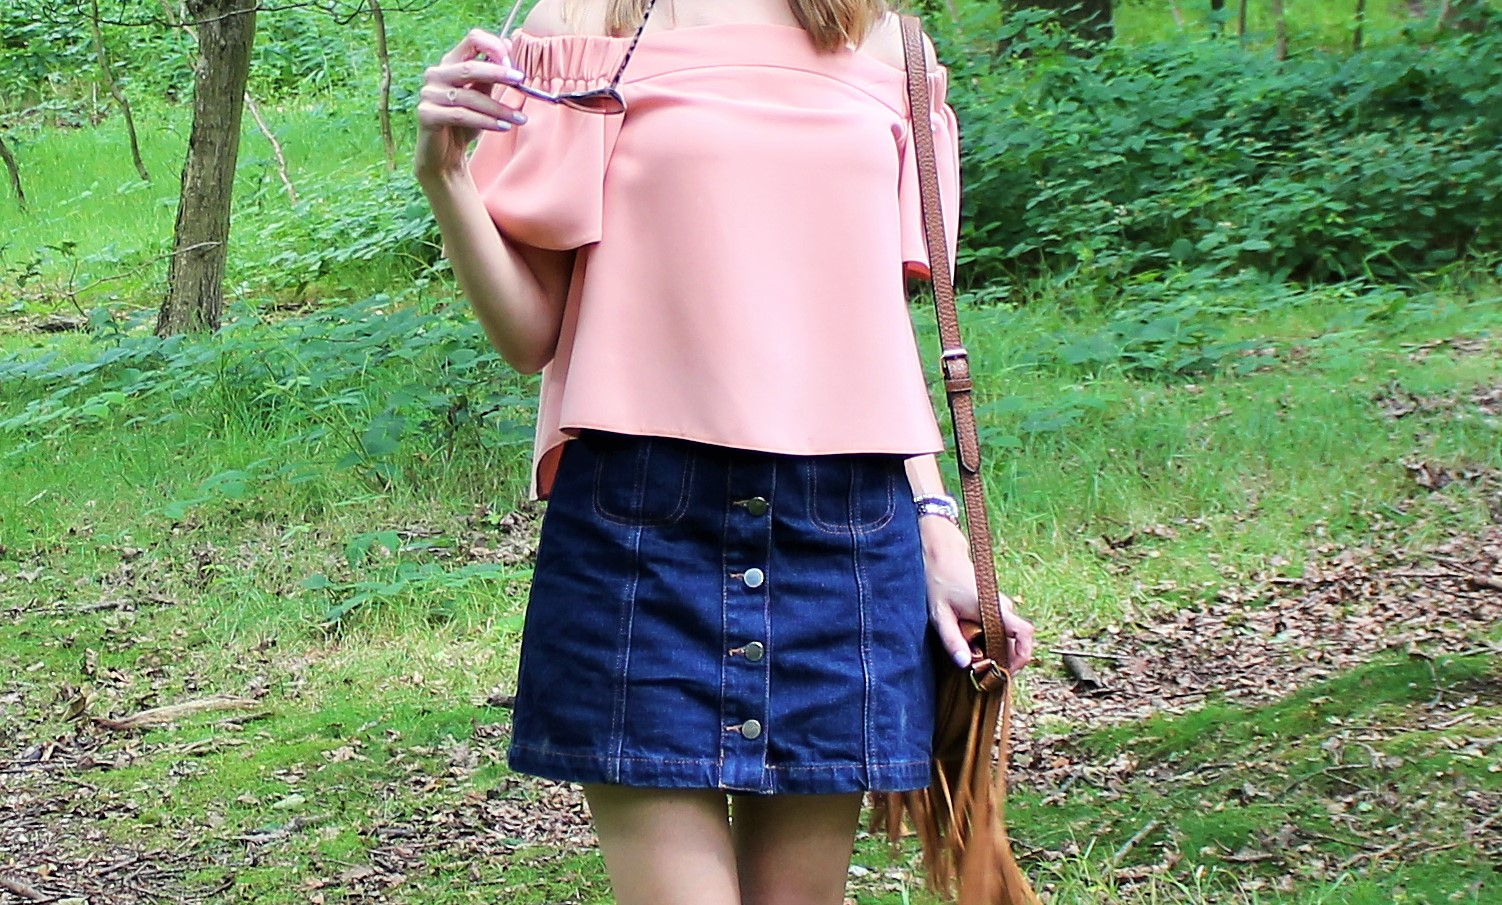 The Casual Bardot 2 - OOTD featuring Topshop off the shoulder top